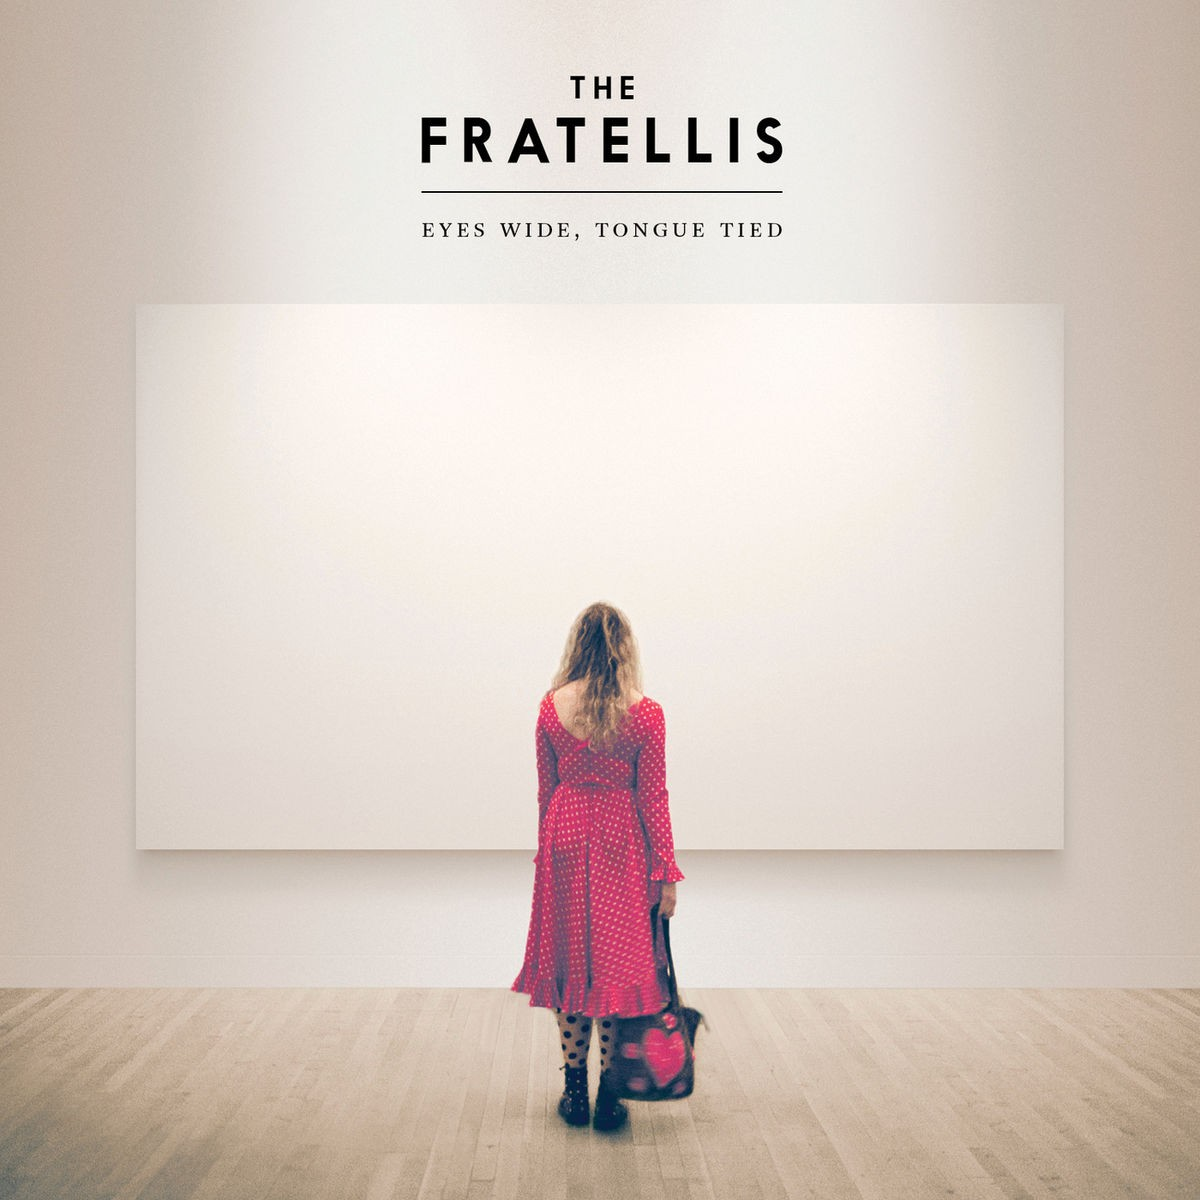 The Fratellis - Eyes Wide, Tongue Tied CD - COOKCD 628X